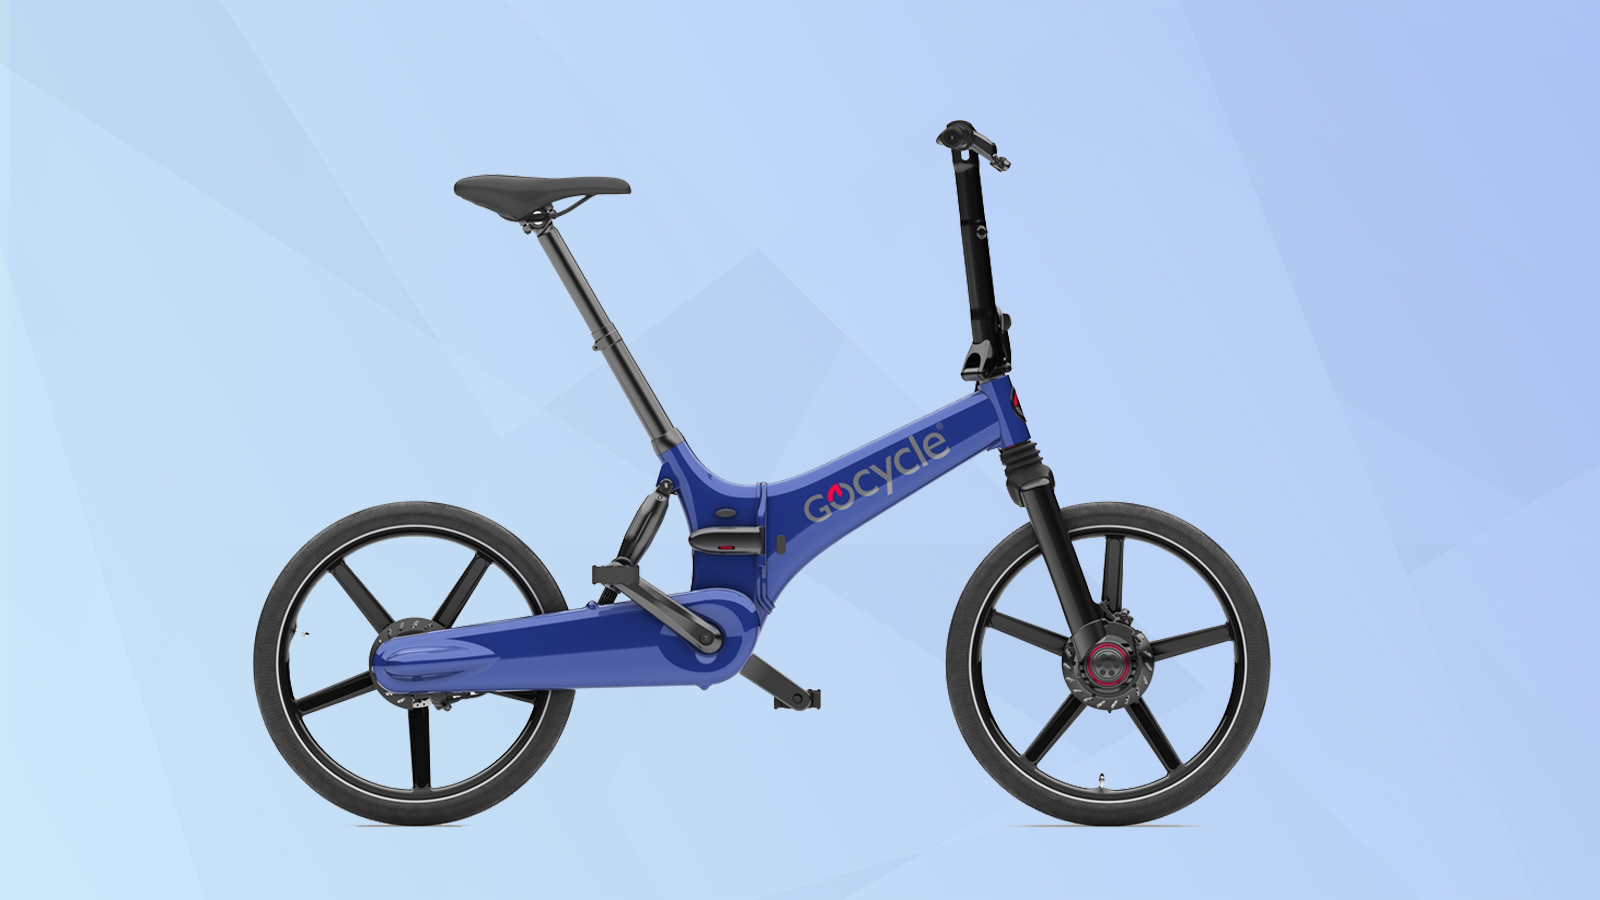 The best electric bikes: Gocycle GX